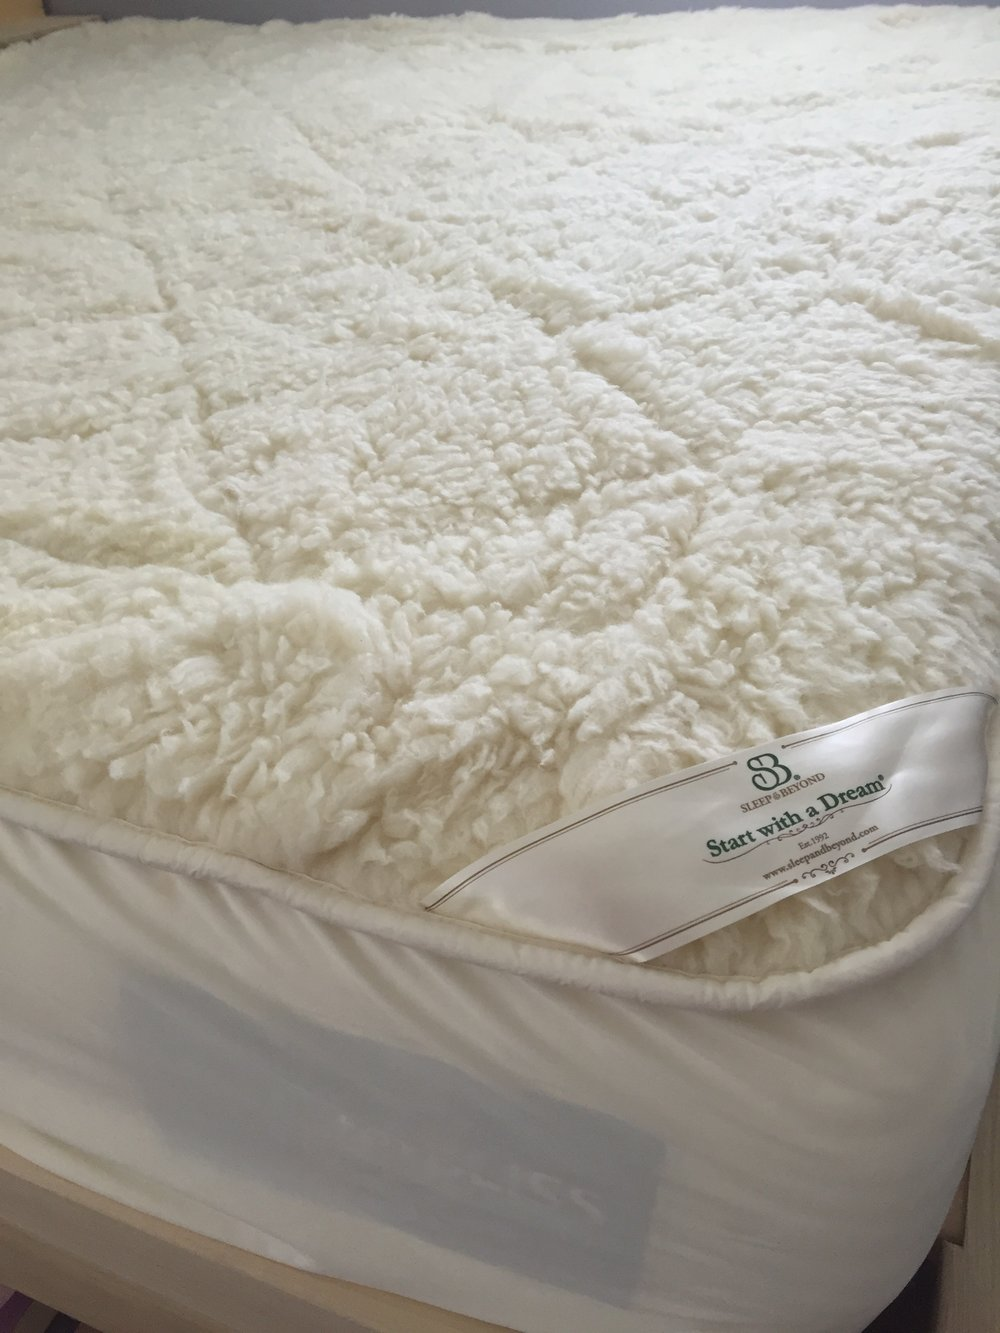 Sleep and Beyond mattress protector